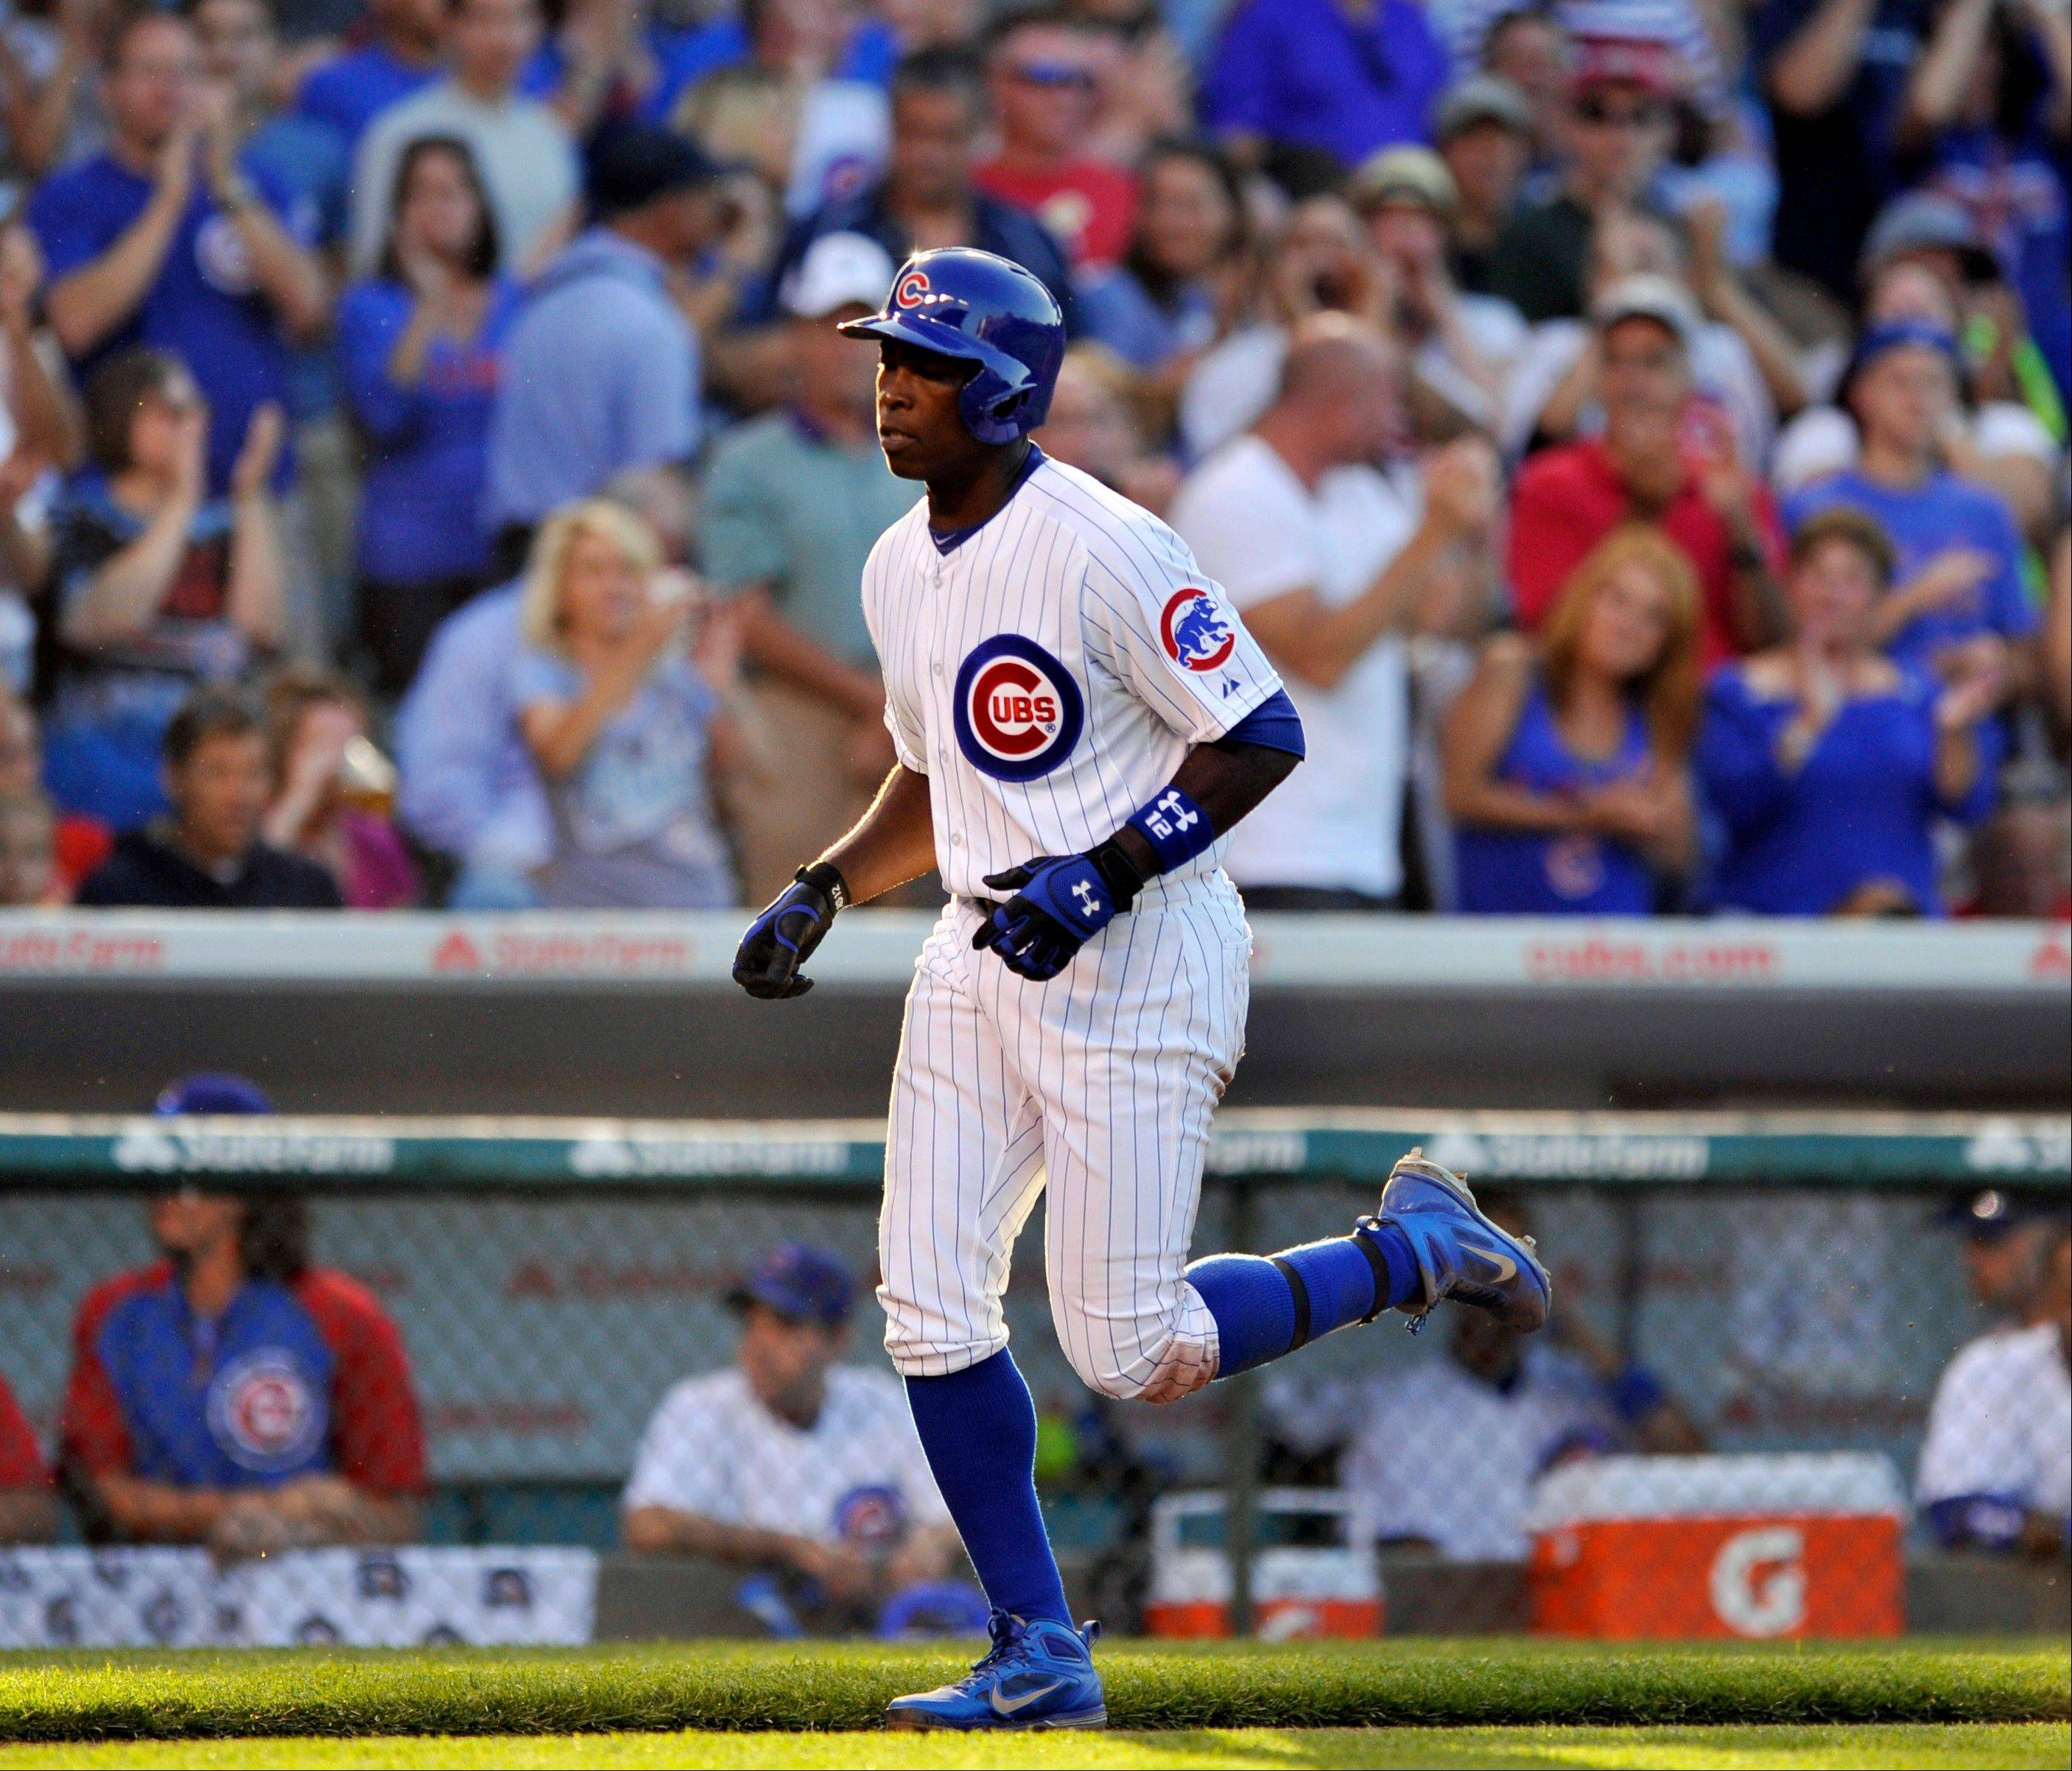 The Cubs� Alfonso Soriano rounds the bases after hitting a solo home run during the third inning of Saturday�s game. The Cubs beat the St. Louis Cardinals 6-4 at Wrigley Field.